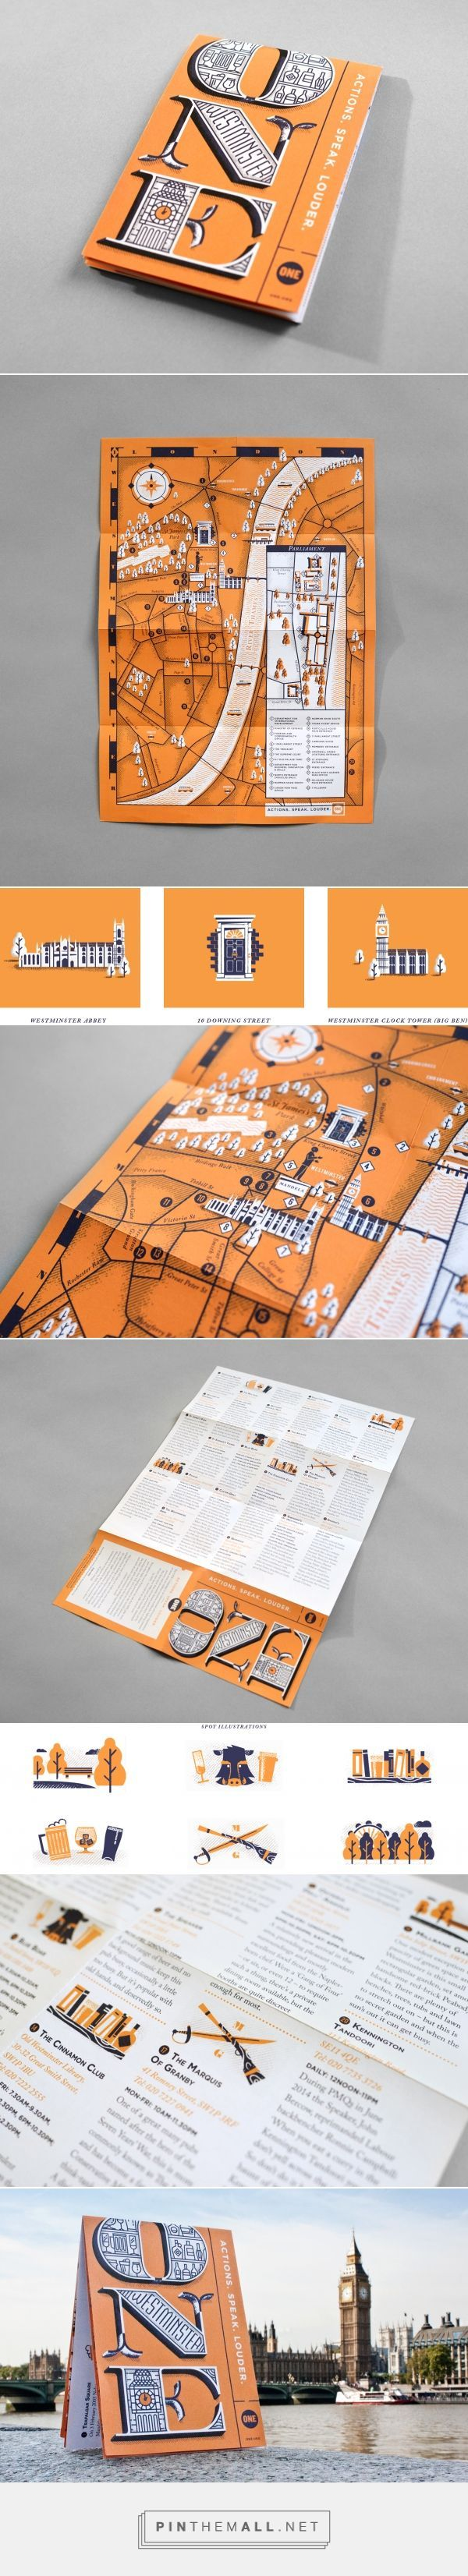 ONE Westminster - Map - Herb Lester Associates on Behance - created via http://pinthemall.net